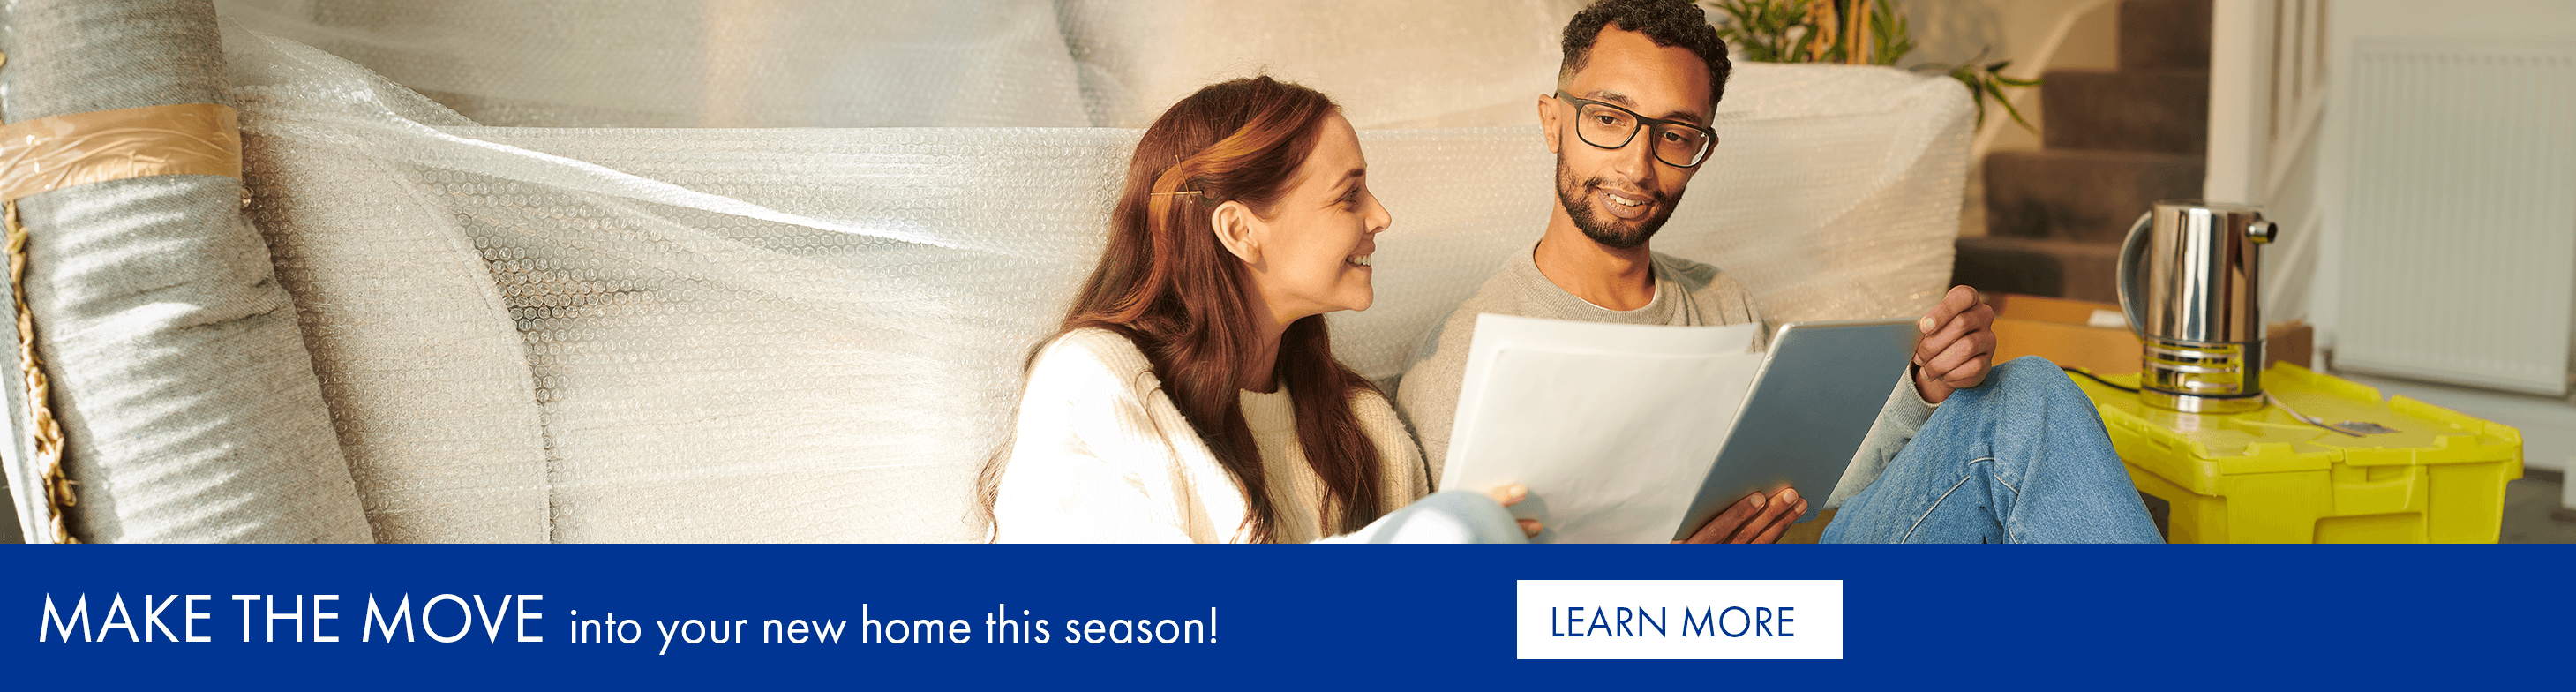 Make the move into your new home this season!